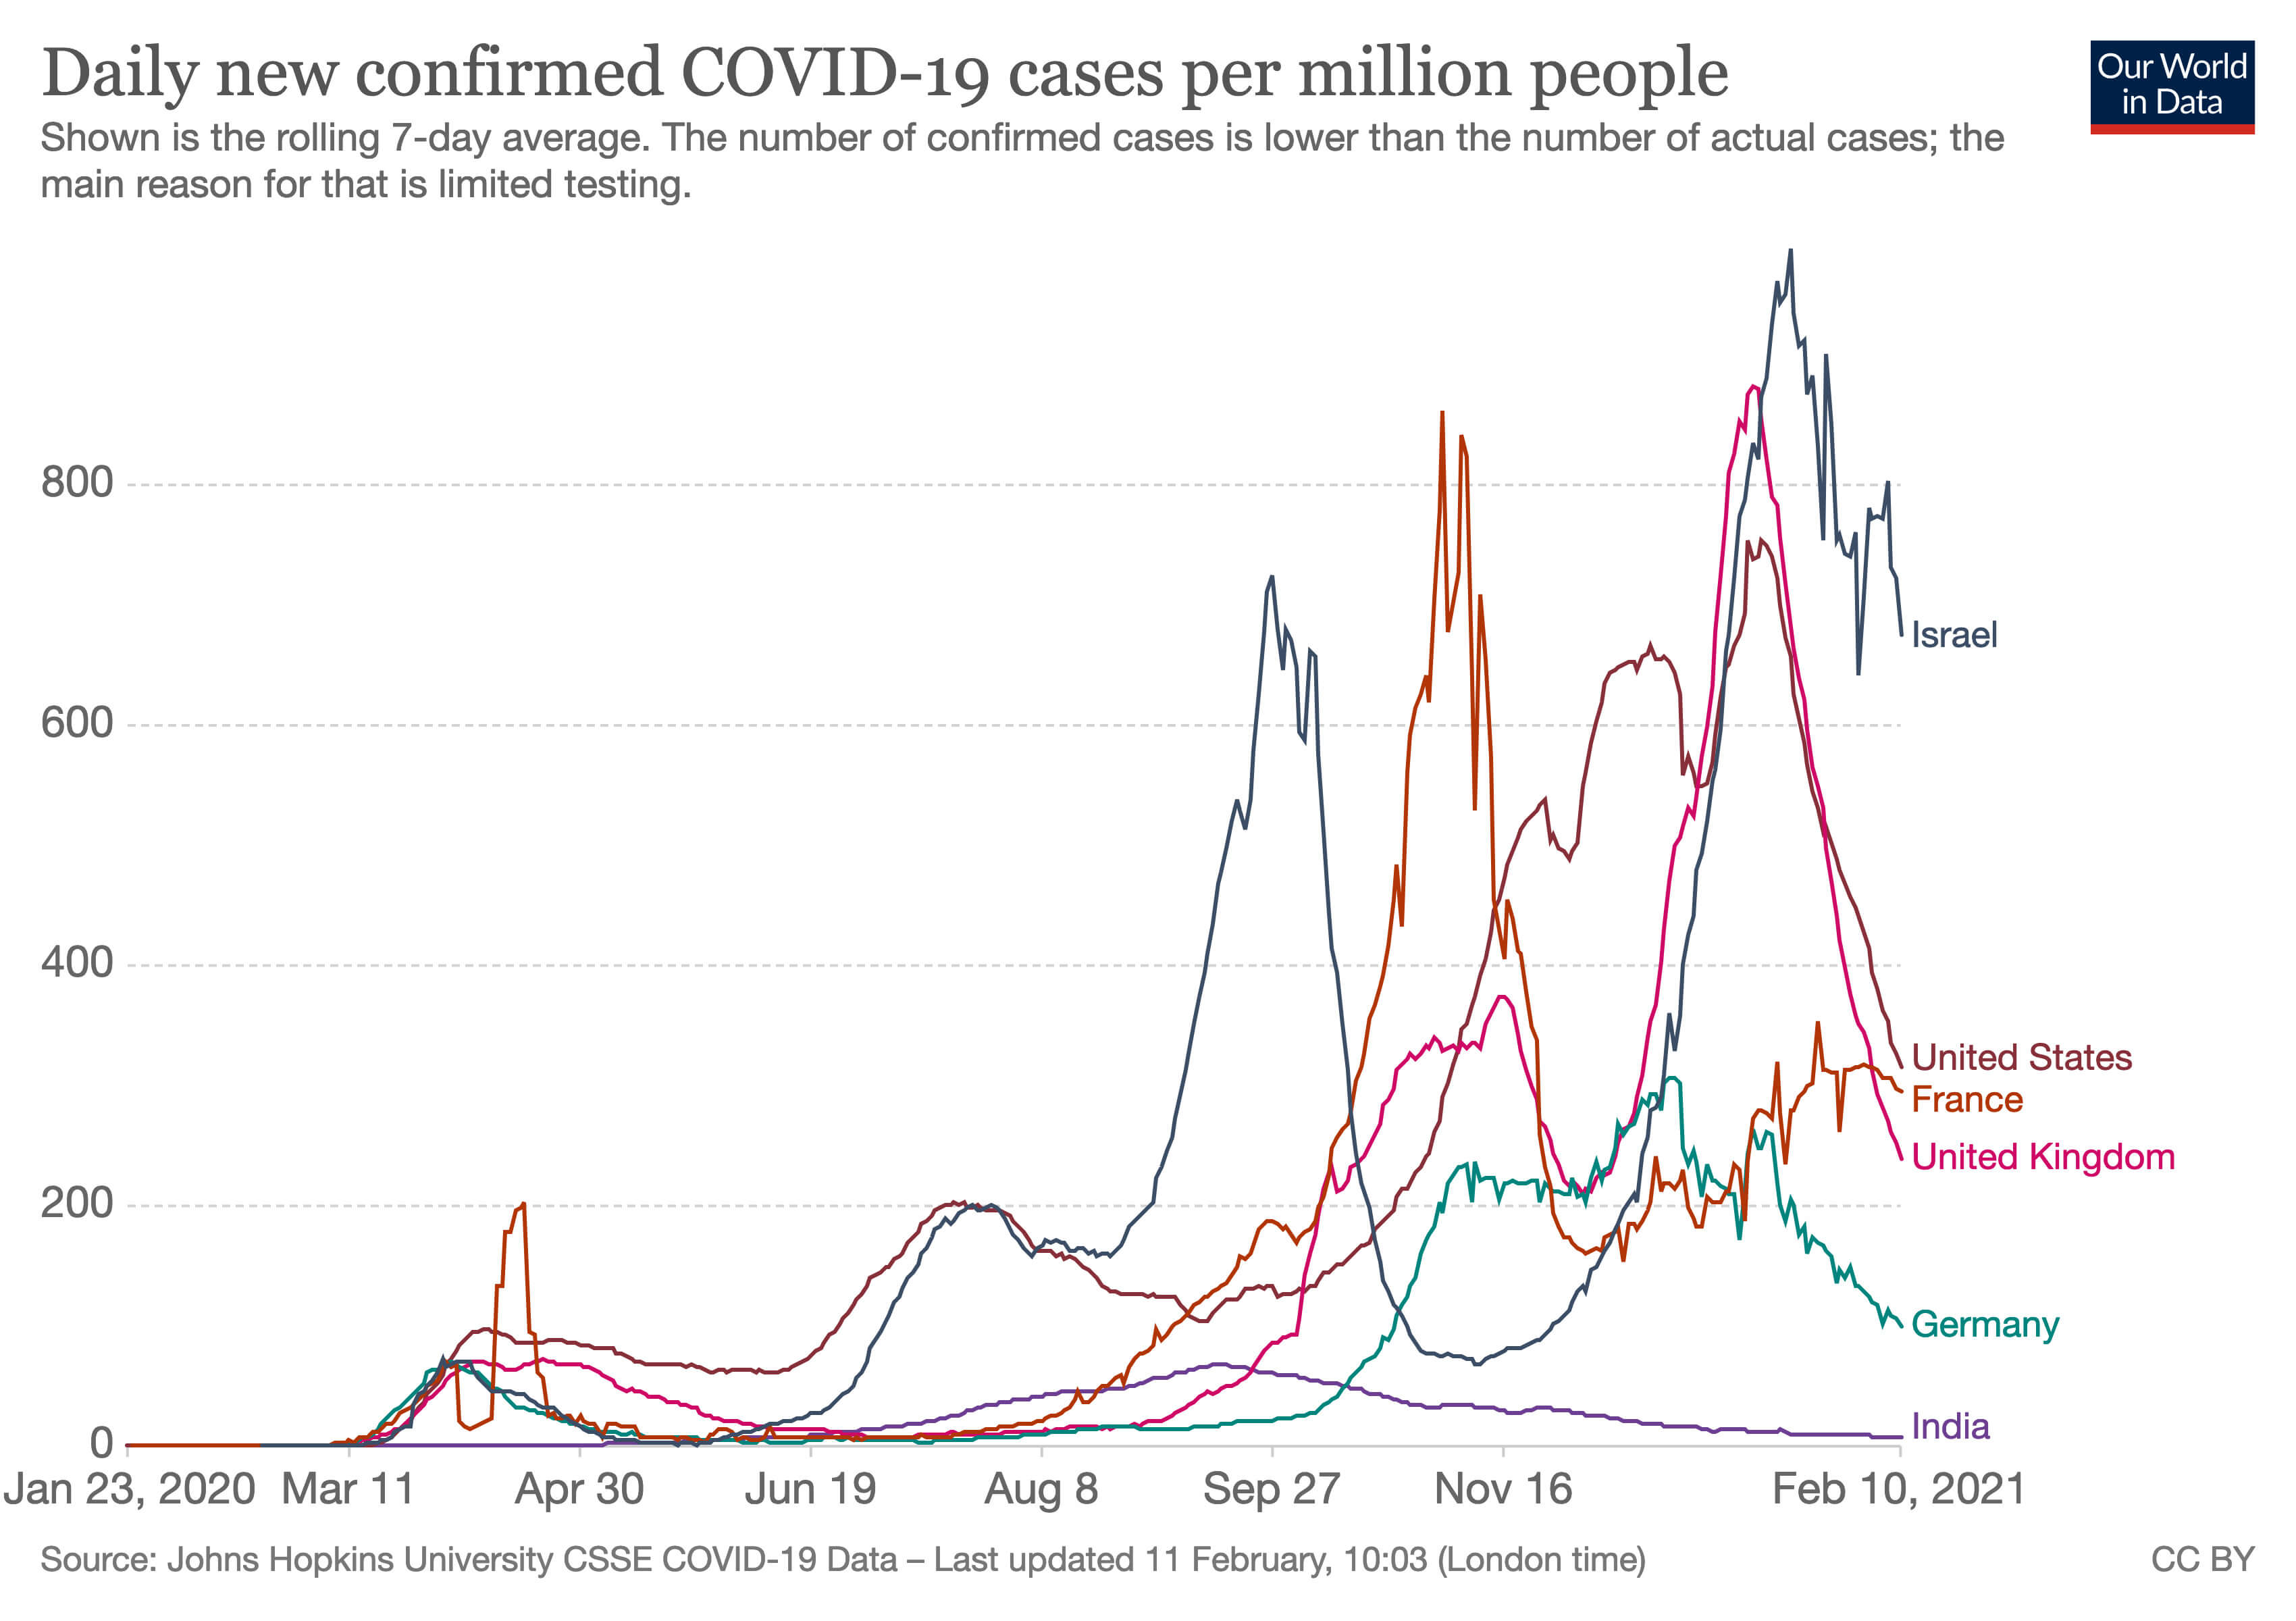 coronavirus-data-explorer_original.jpg